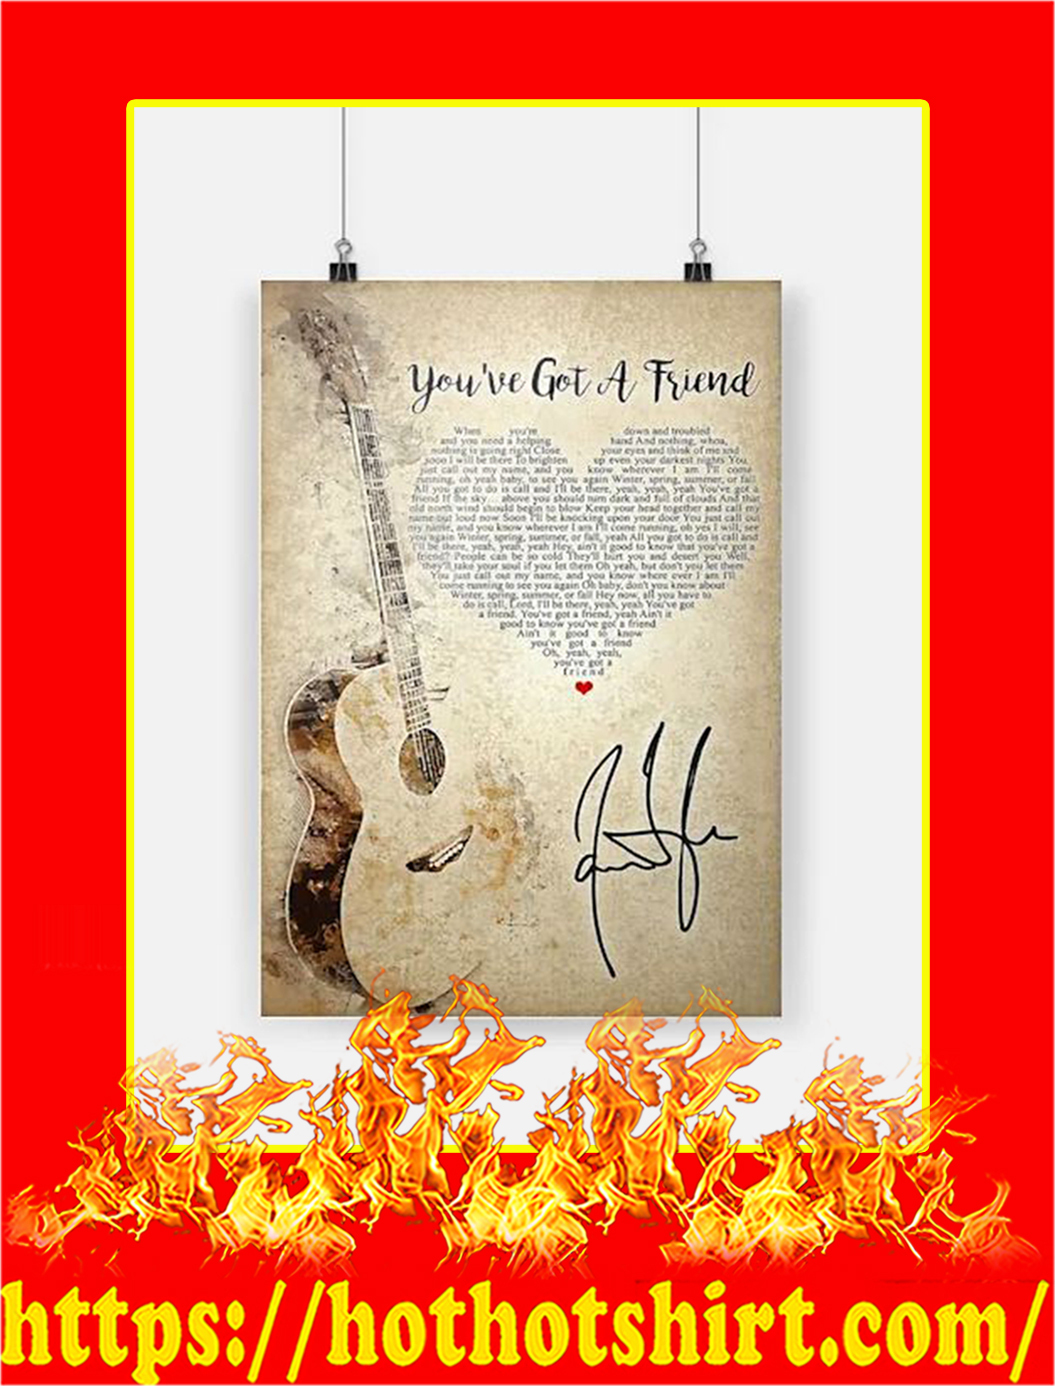 You've Got A Friend Poster - A2